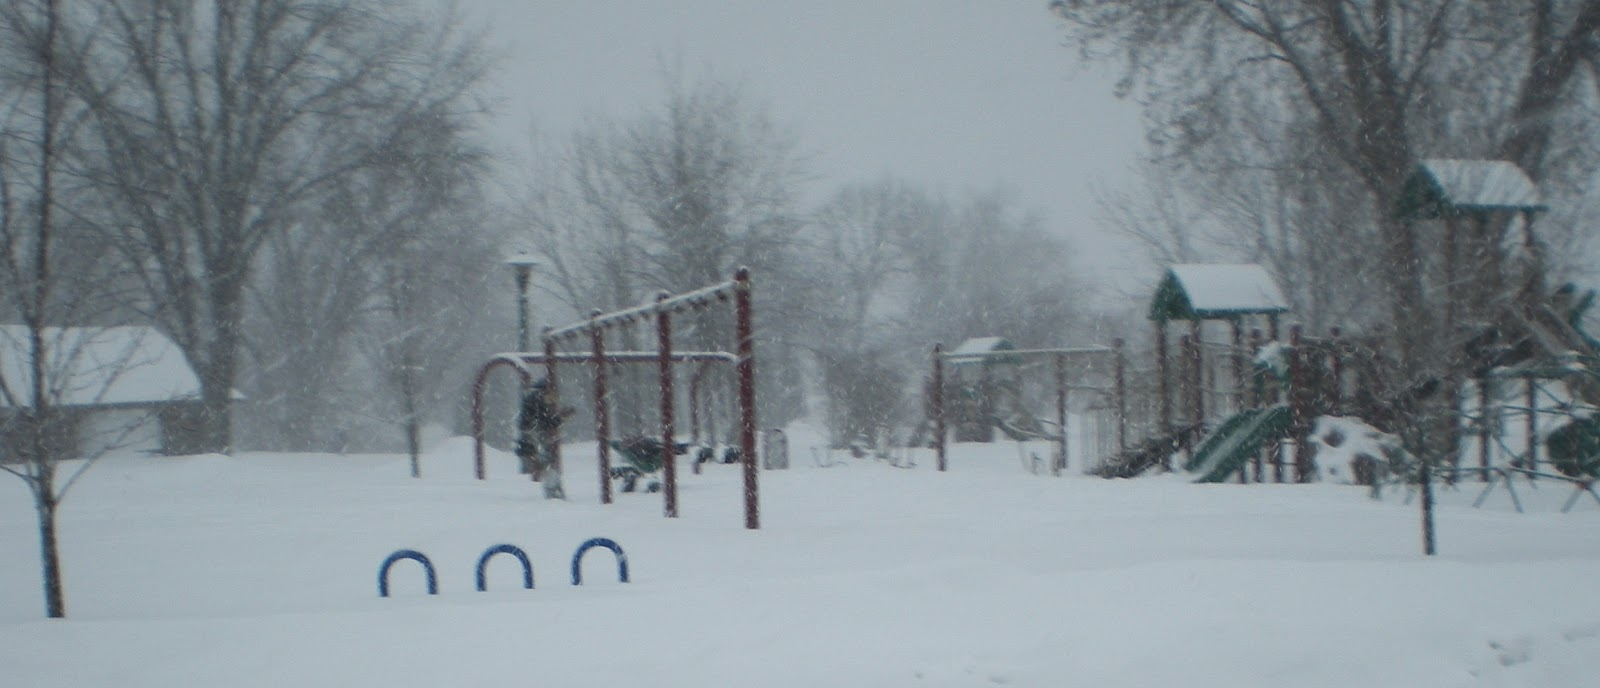 Whiteside, park, Ely, snowstorm, playing, swings, crazy